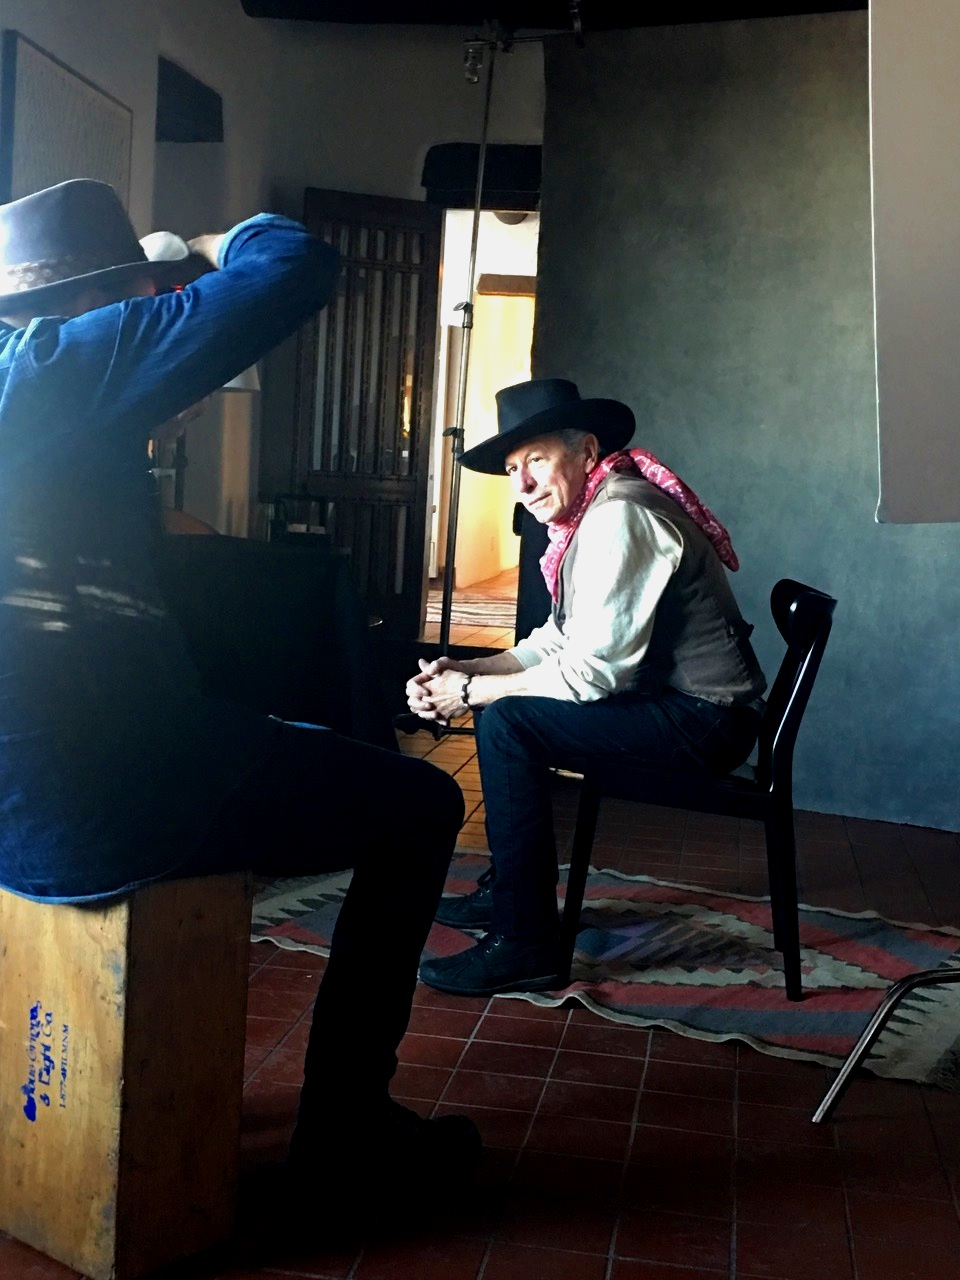 Danny Clinch and Joe Ely, El Rey Hotel, Santa Fe, NM 2019